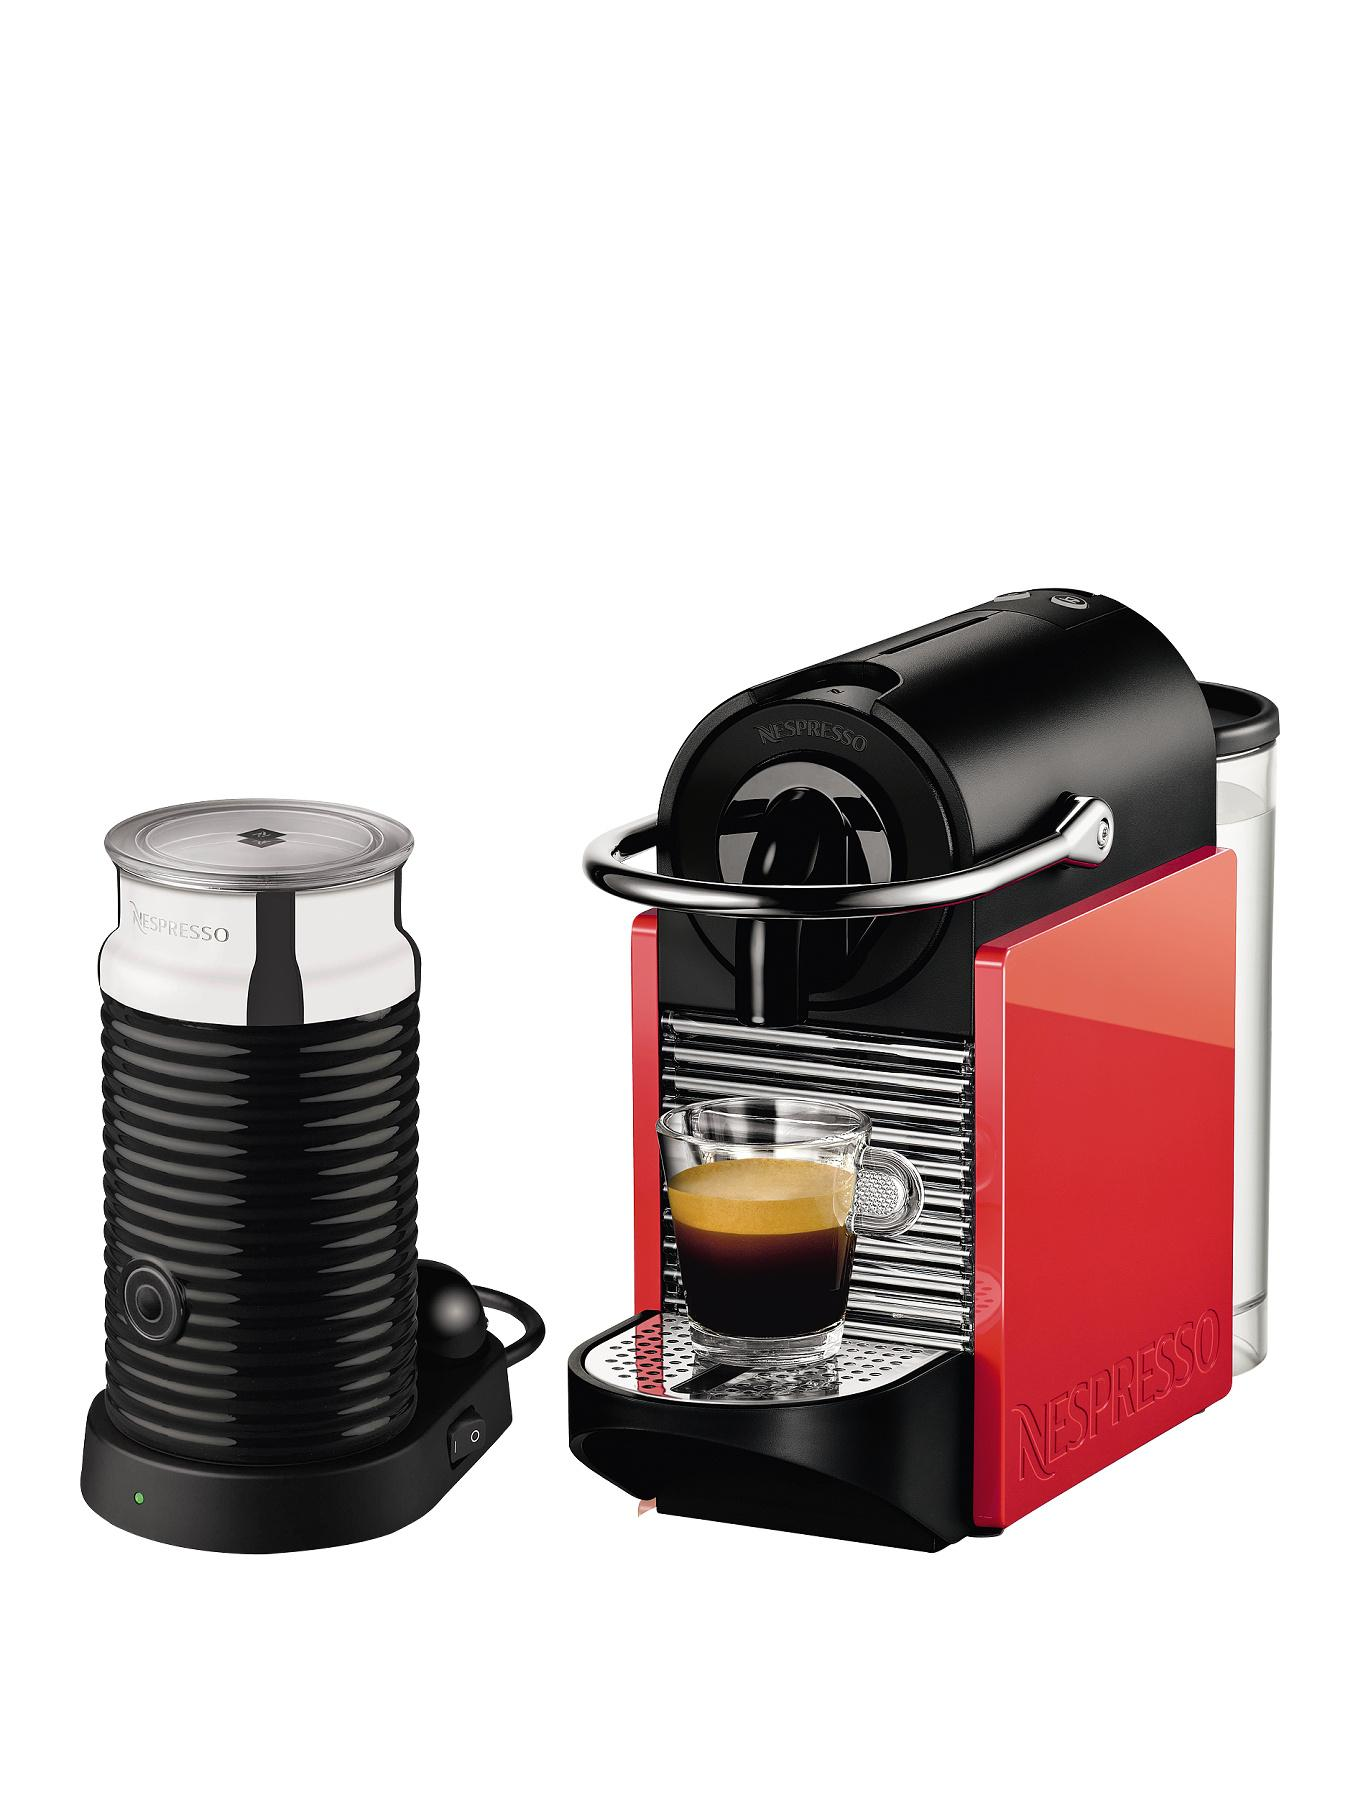 top 10 cheapest nespresso magimix prices best uk deals. Black Bedroom Furniture Sets. Home Design Ideas